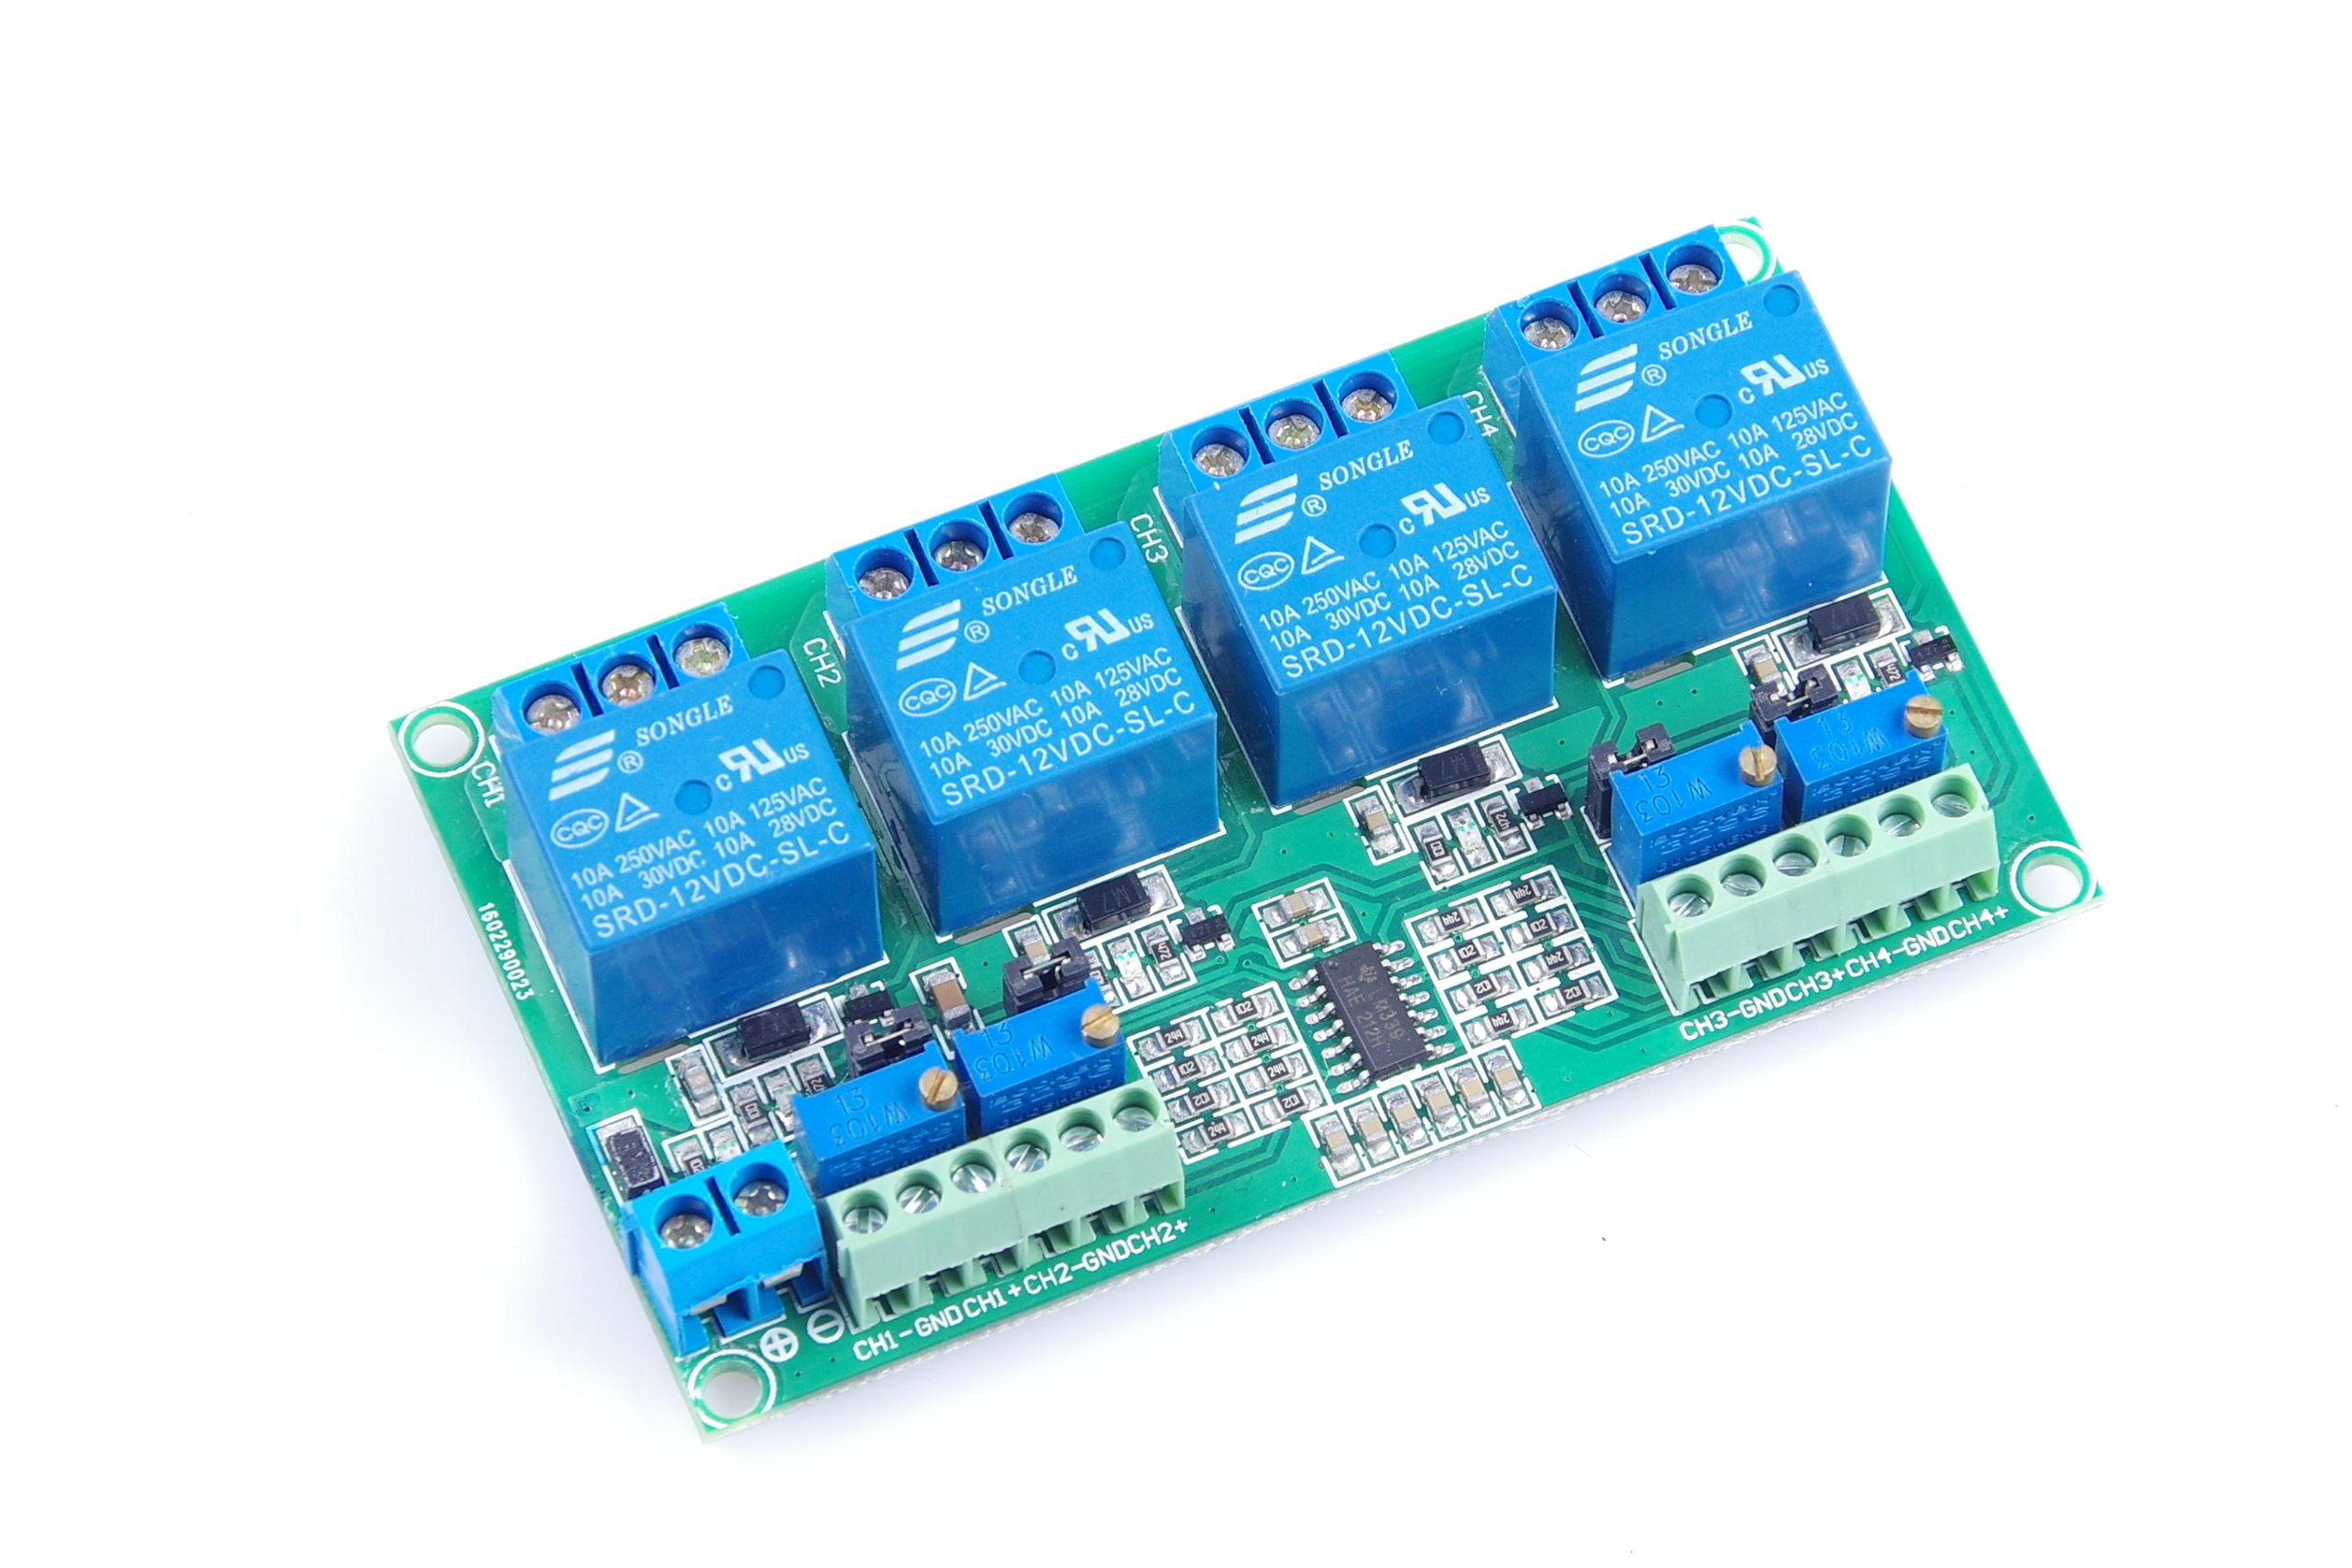 KNACRO DC 12V 4-Channel Voltage Comparator Professional High-precision resolution of 0.1V LM393 Comparator Module